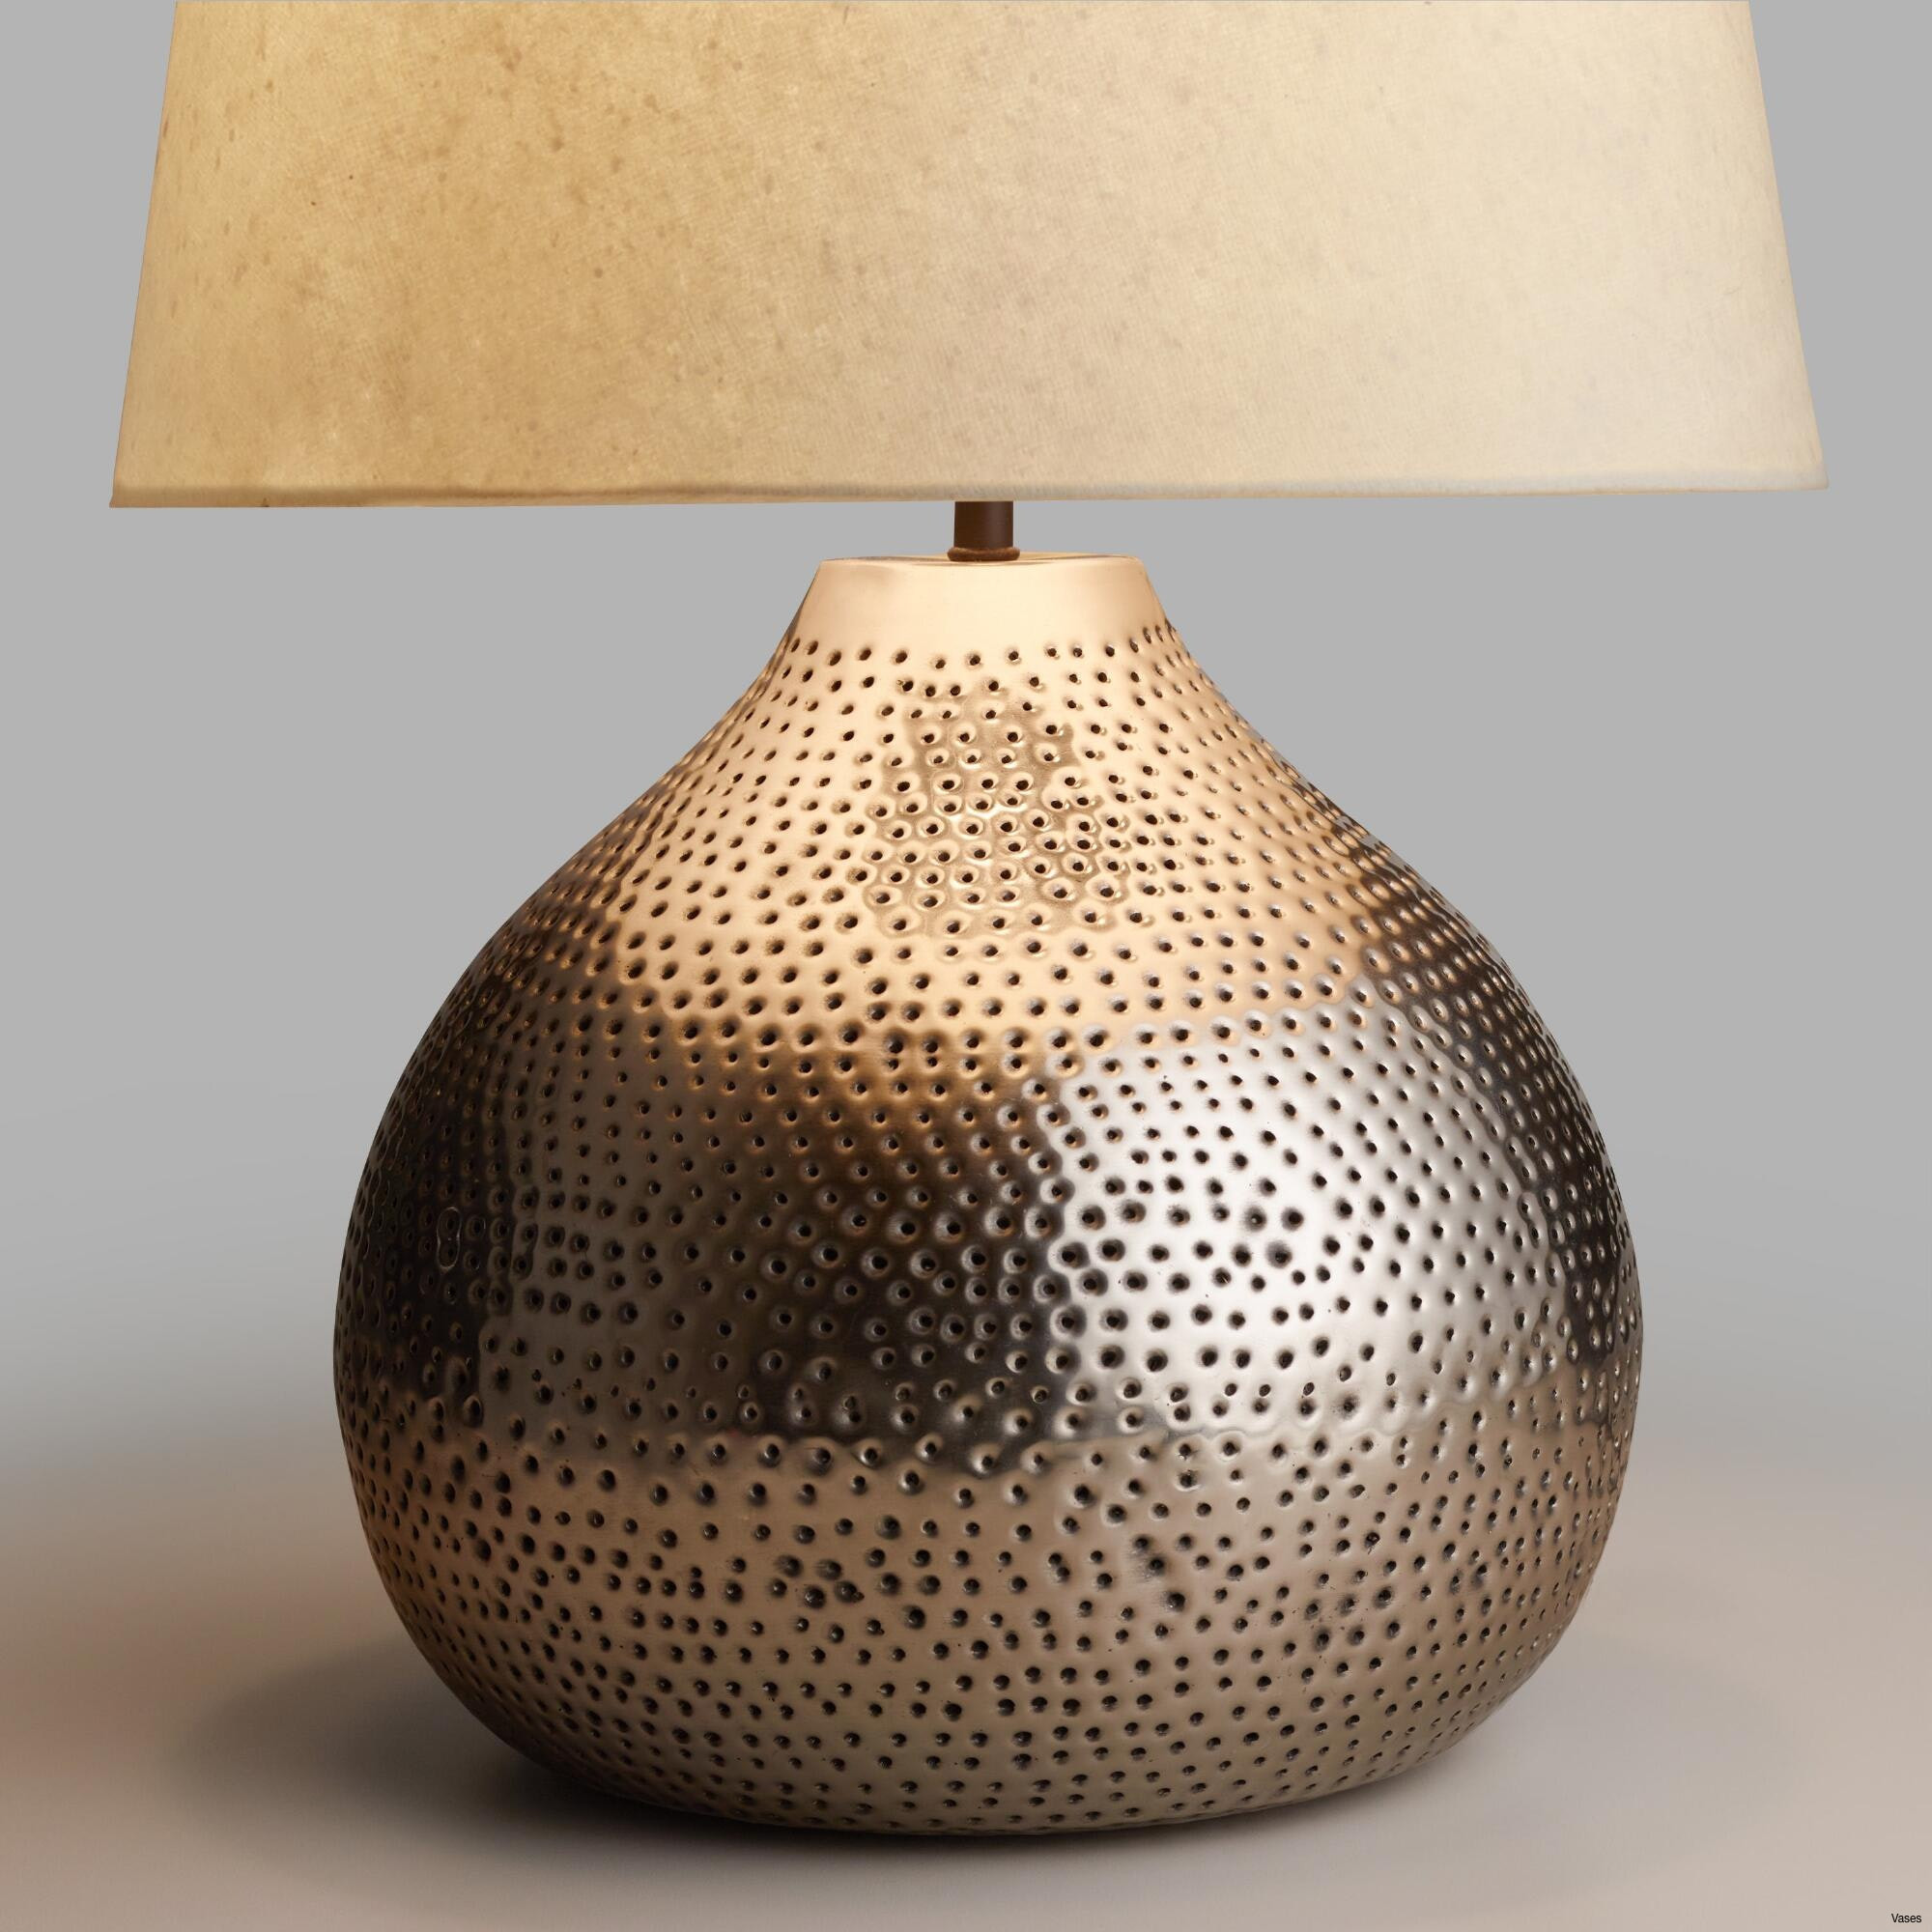 bamboo vase of rice paper table lamp awesome how to make a table lamp 10h vases in rice paper table lamp awesome how to make a table lamp 10h vases from vase now